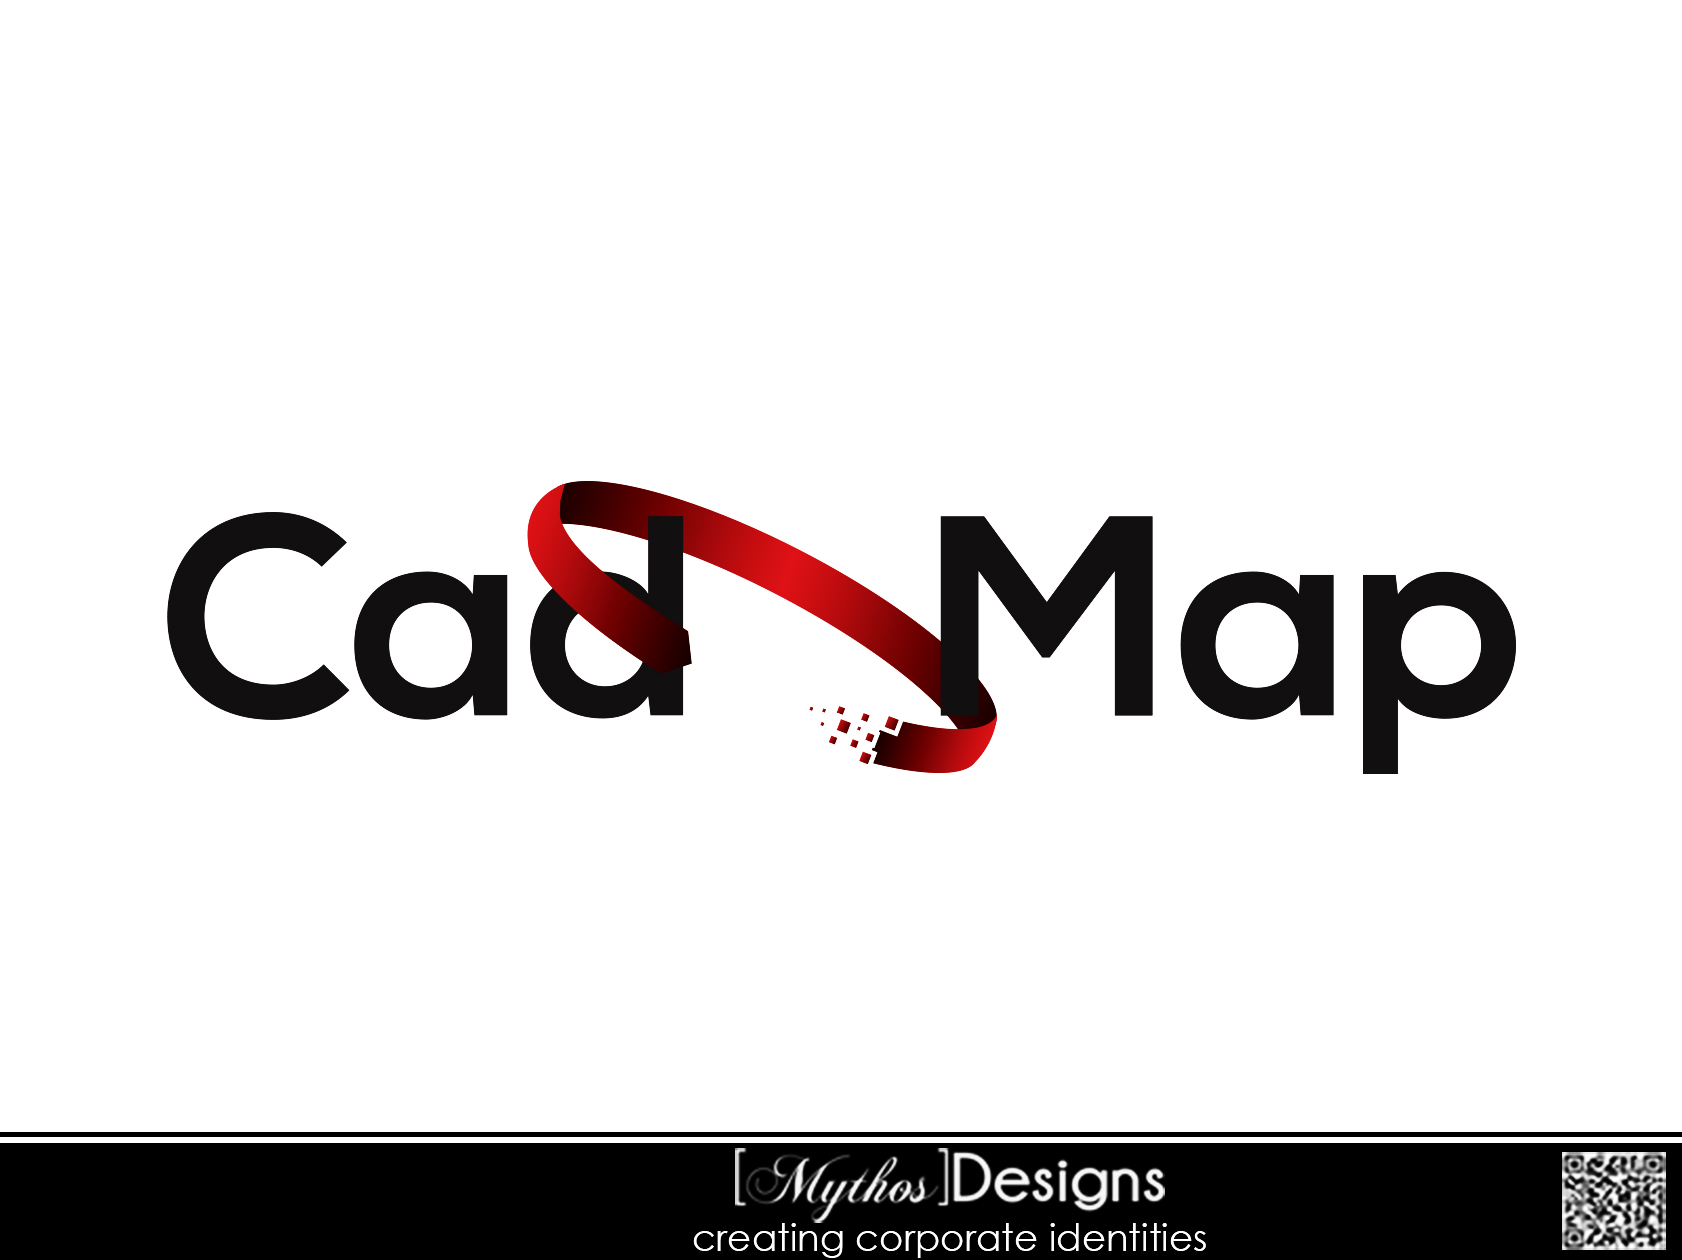 Logo Design by Mythos Designs - Entry No. 32 in the Logo Design Contest Captivating Logo Design for CadOMap software product.